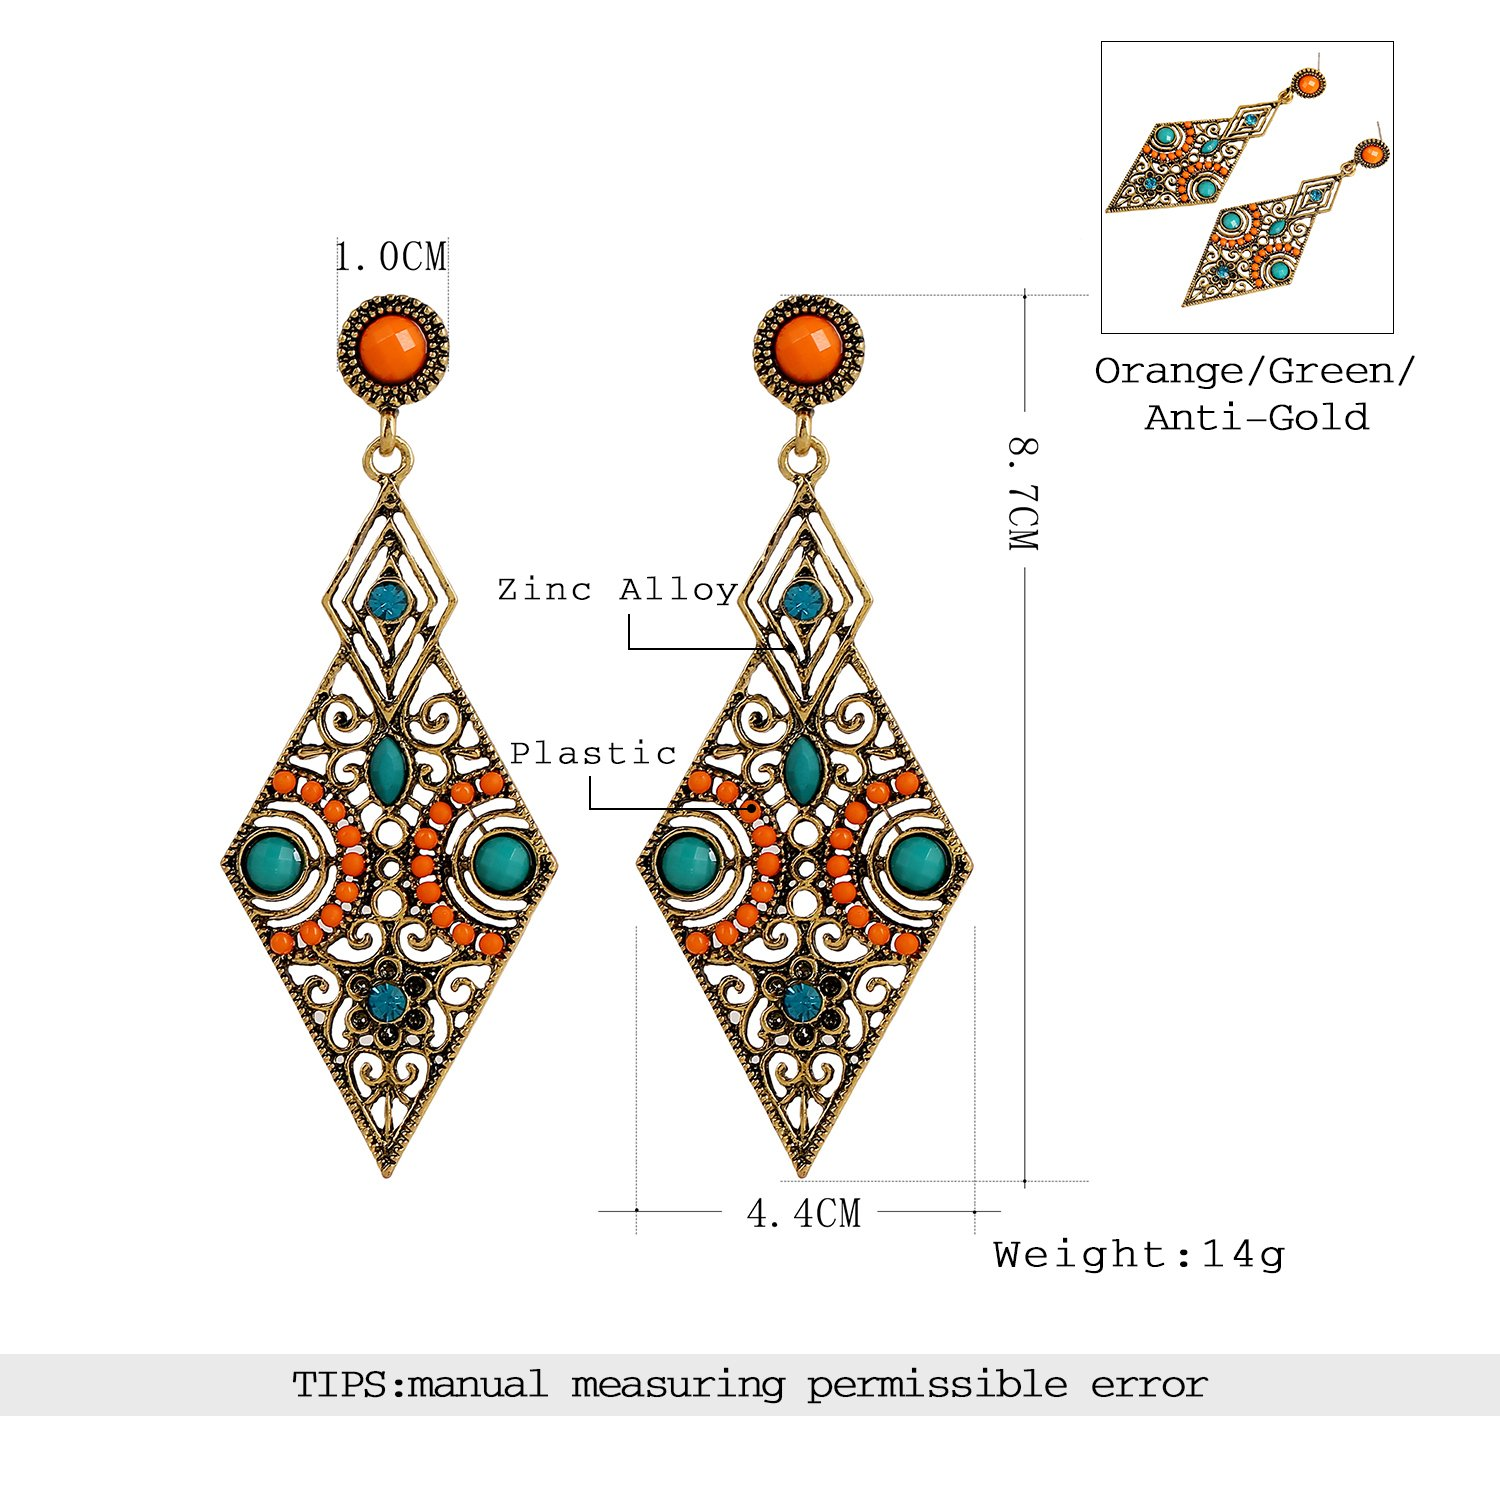 lureme® Vintage Antique Gold Hollow Diamond Shape Orange and Green Beads Stud Earrings(02005171) xWitxMxW